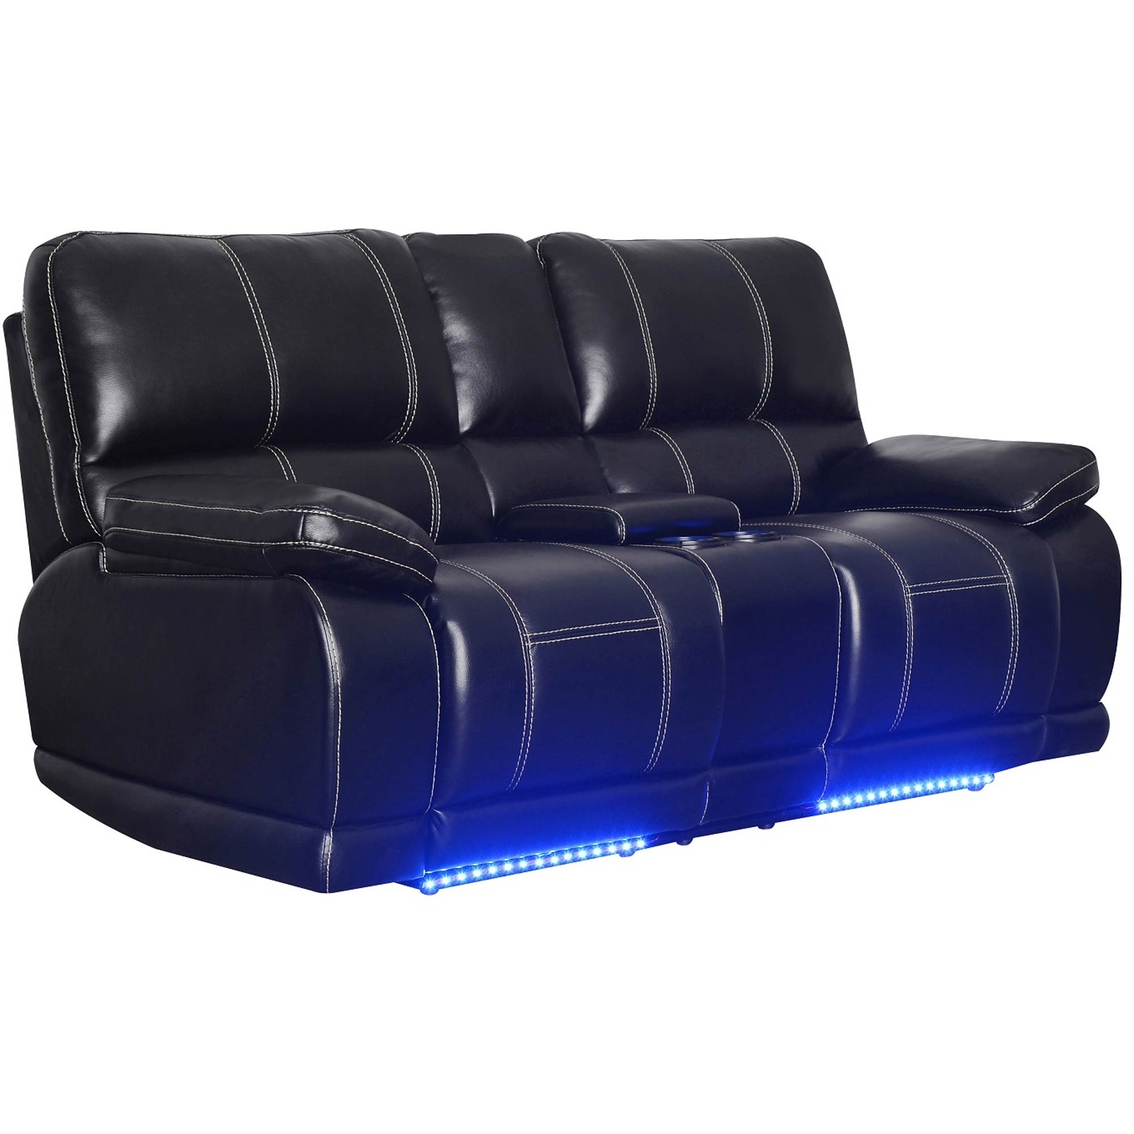 Wondrous Klaussner Electra Power Console Reclining Loveseat Sofas Forskolin Free Trial Chair Design Images Forskolin Free Trialorg